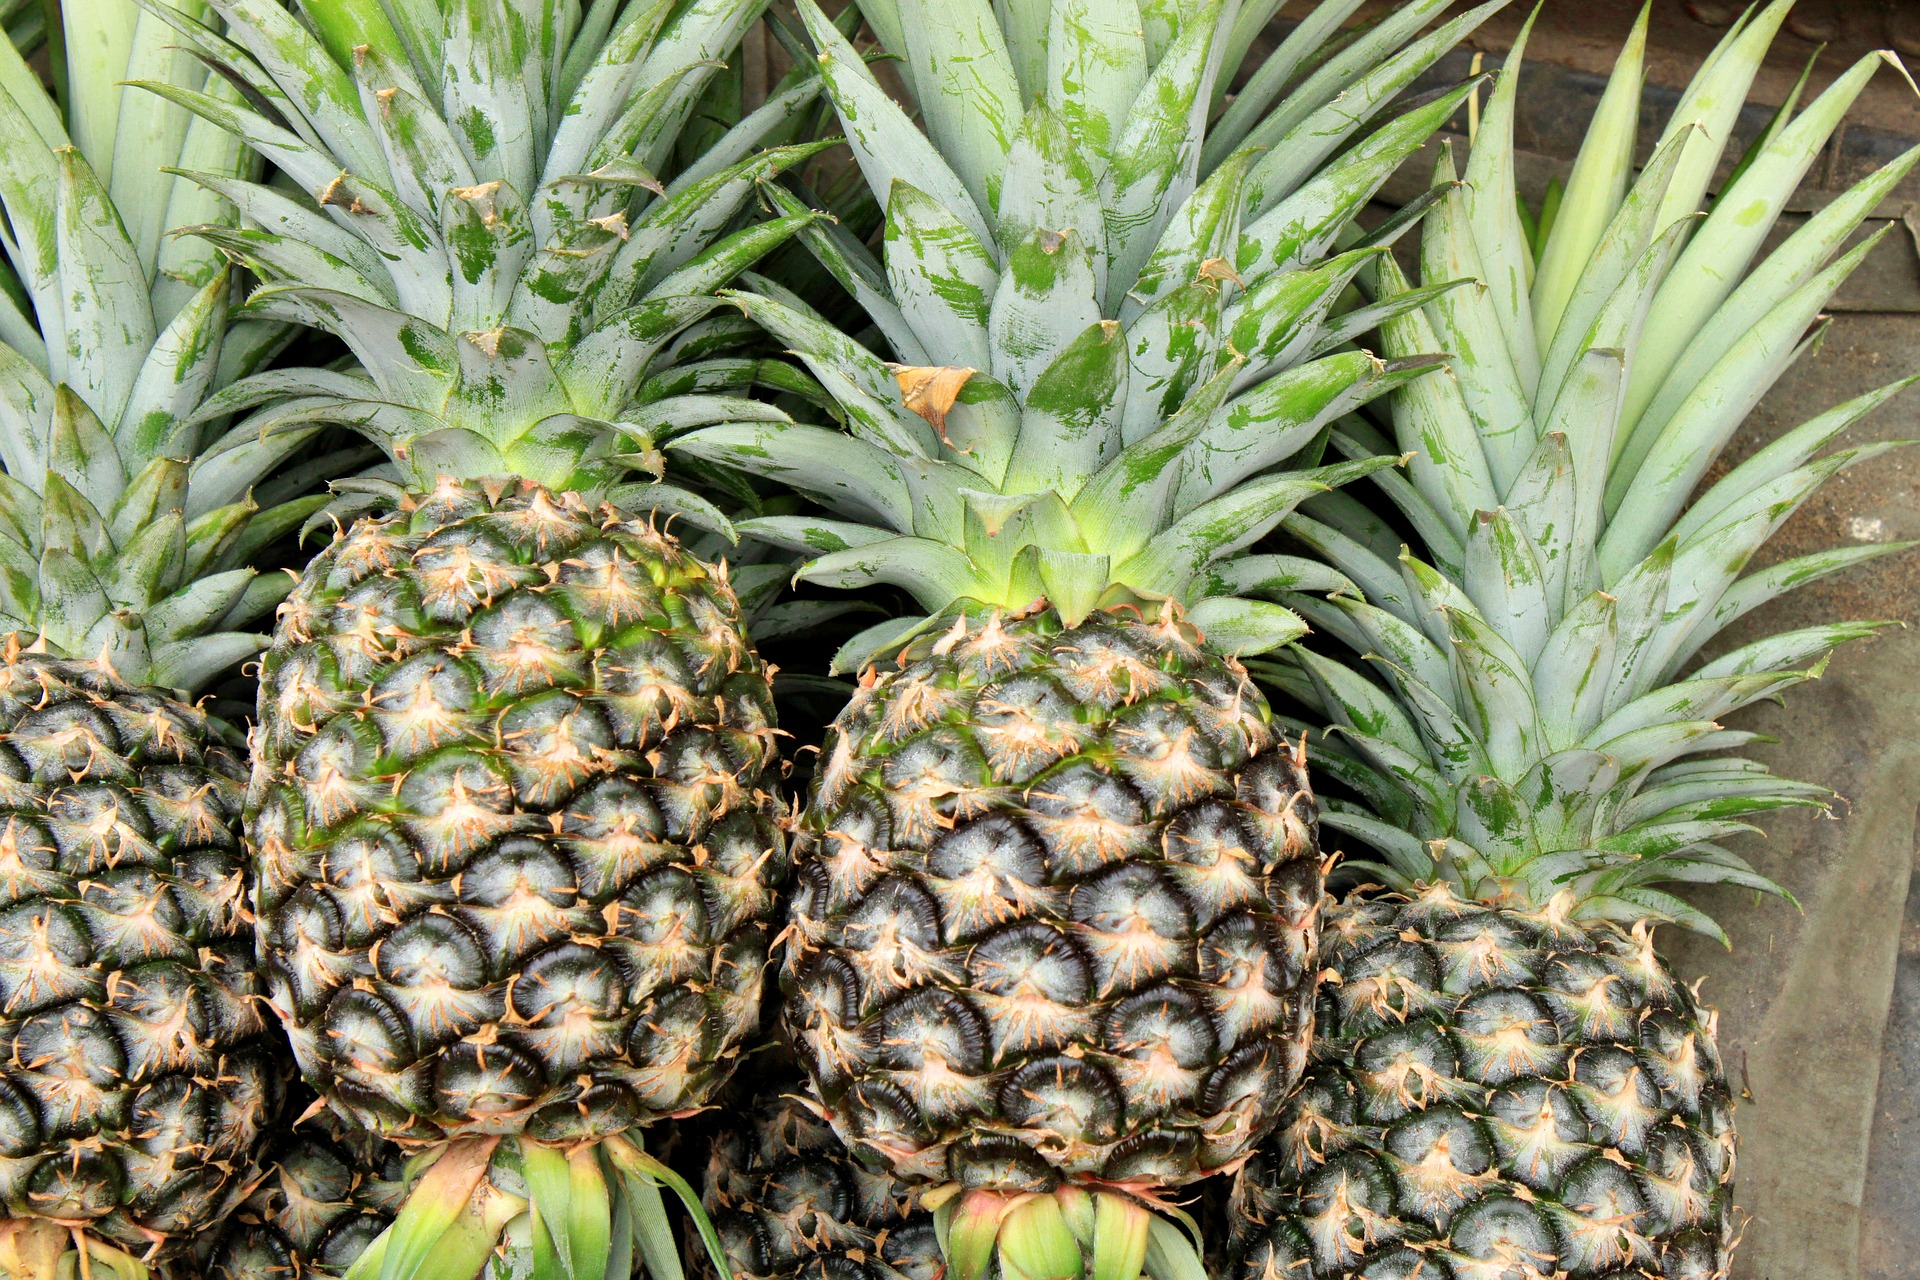 Pineapple is a natural anti-inflammatory food